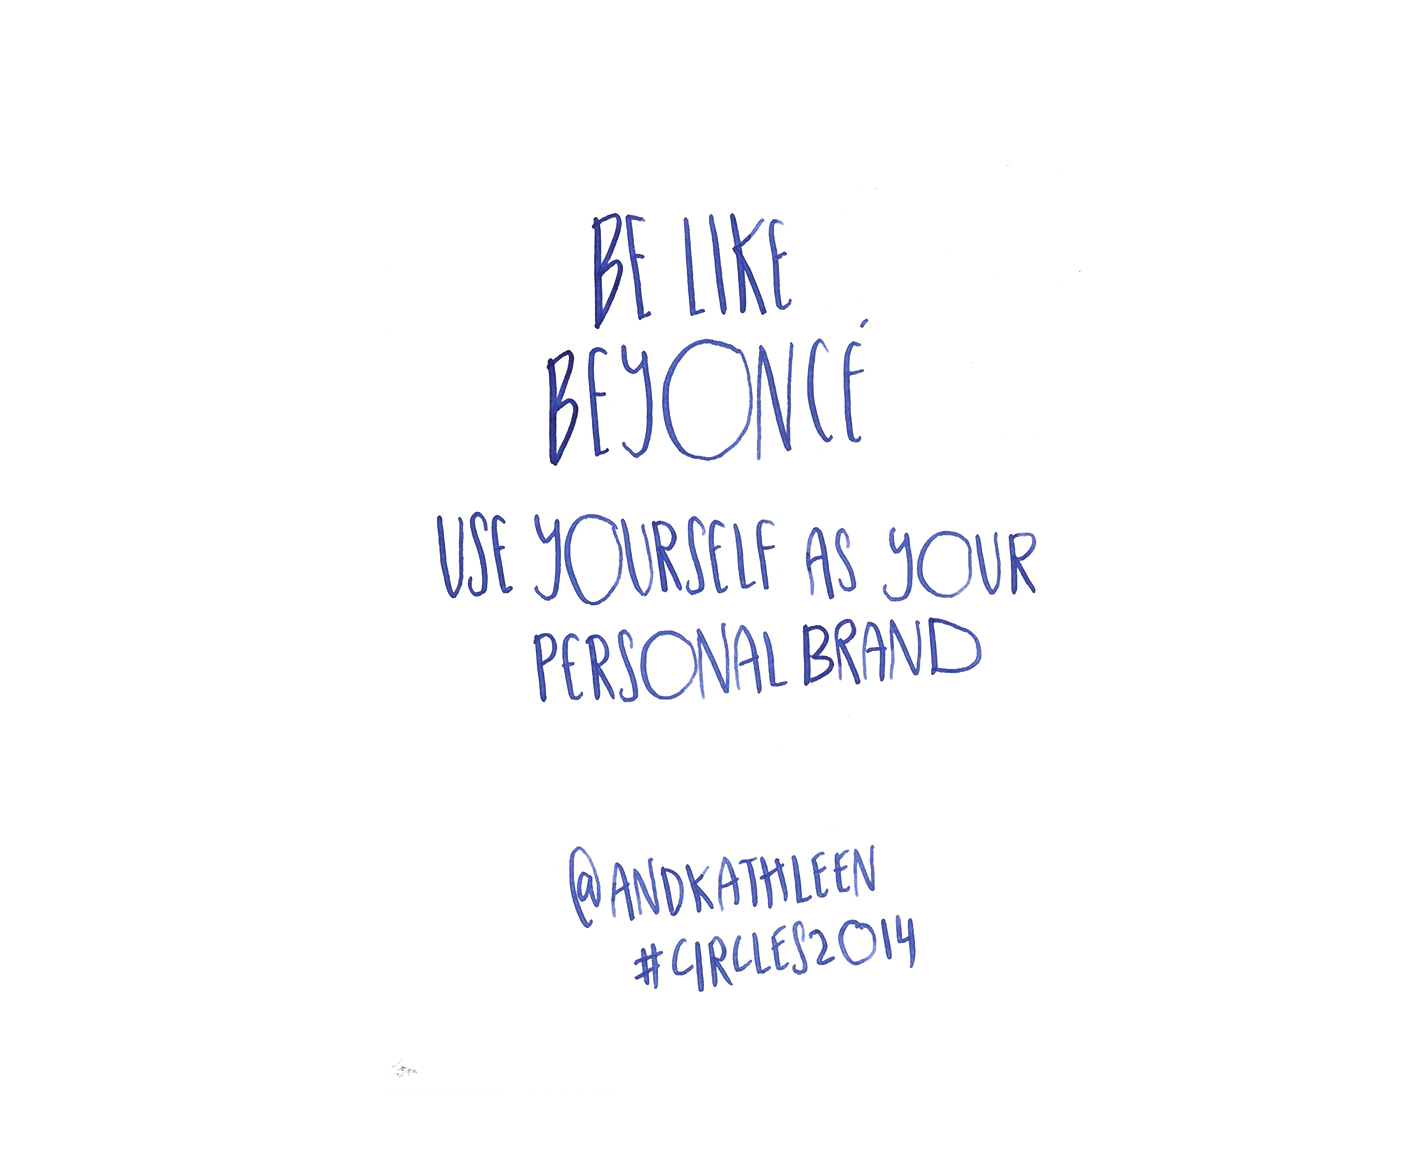 Be like Beyonce, use yourself as your personal brand - Kathleen Shannon @andkathleen quote from #circles2014 | type by alicia-carvalho.com